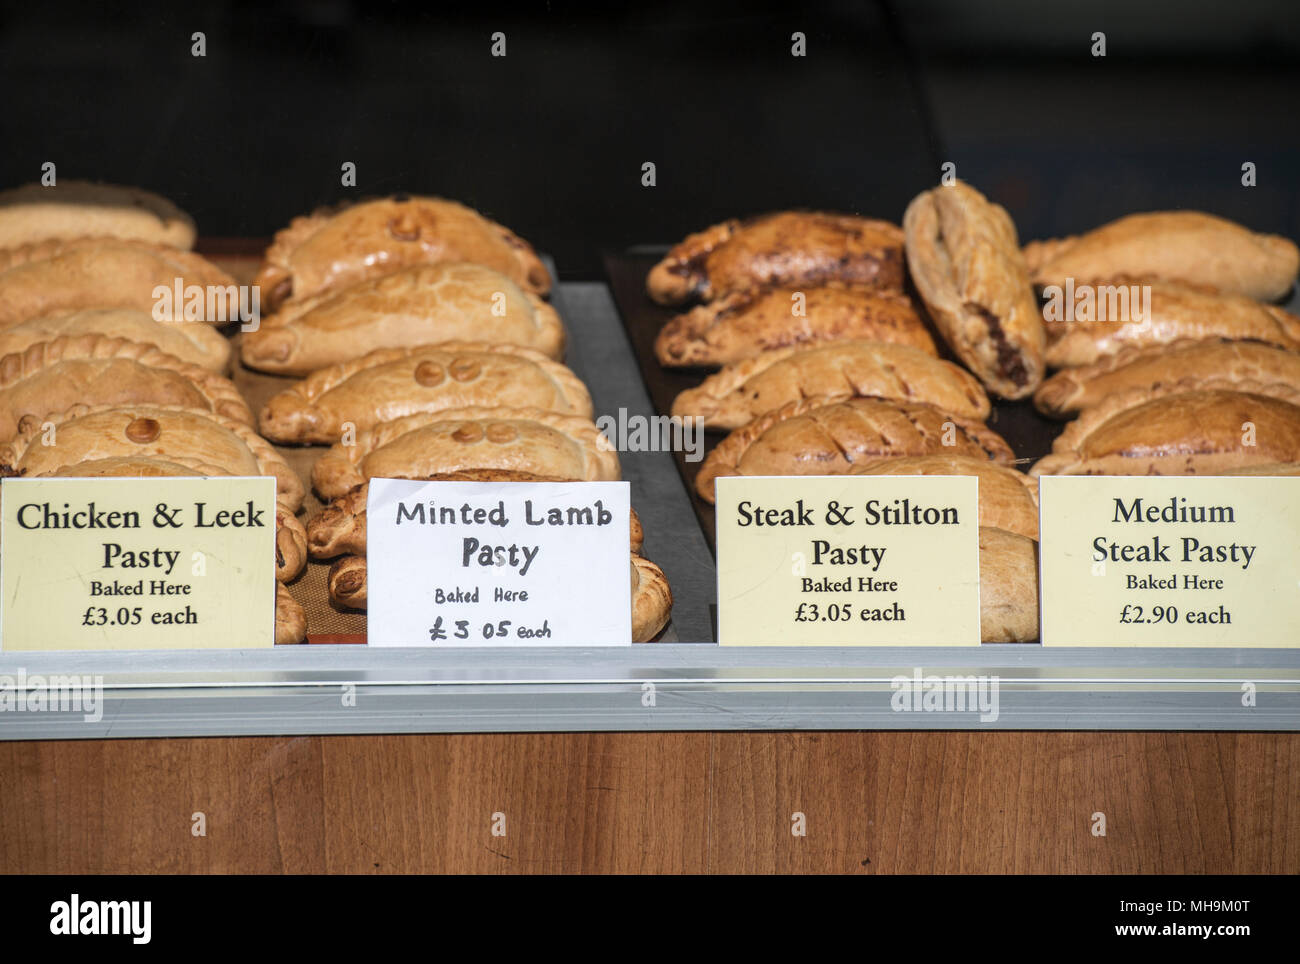 Cornish pasties on display in a bakery shop window in St Ives, Cornwall, England, UK - Stock Image